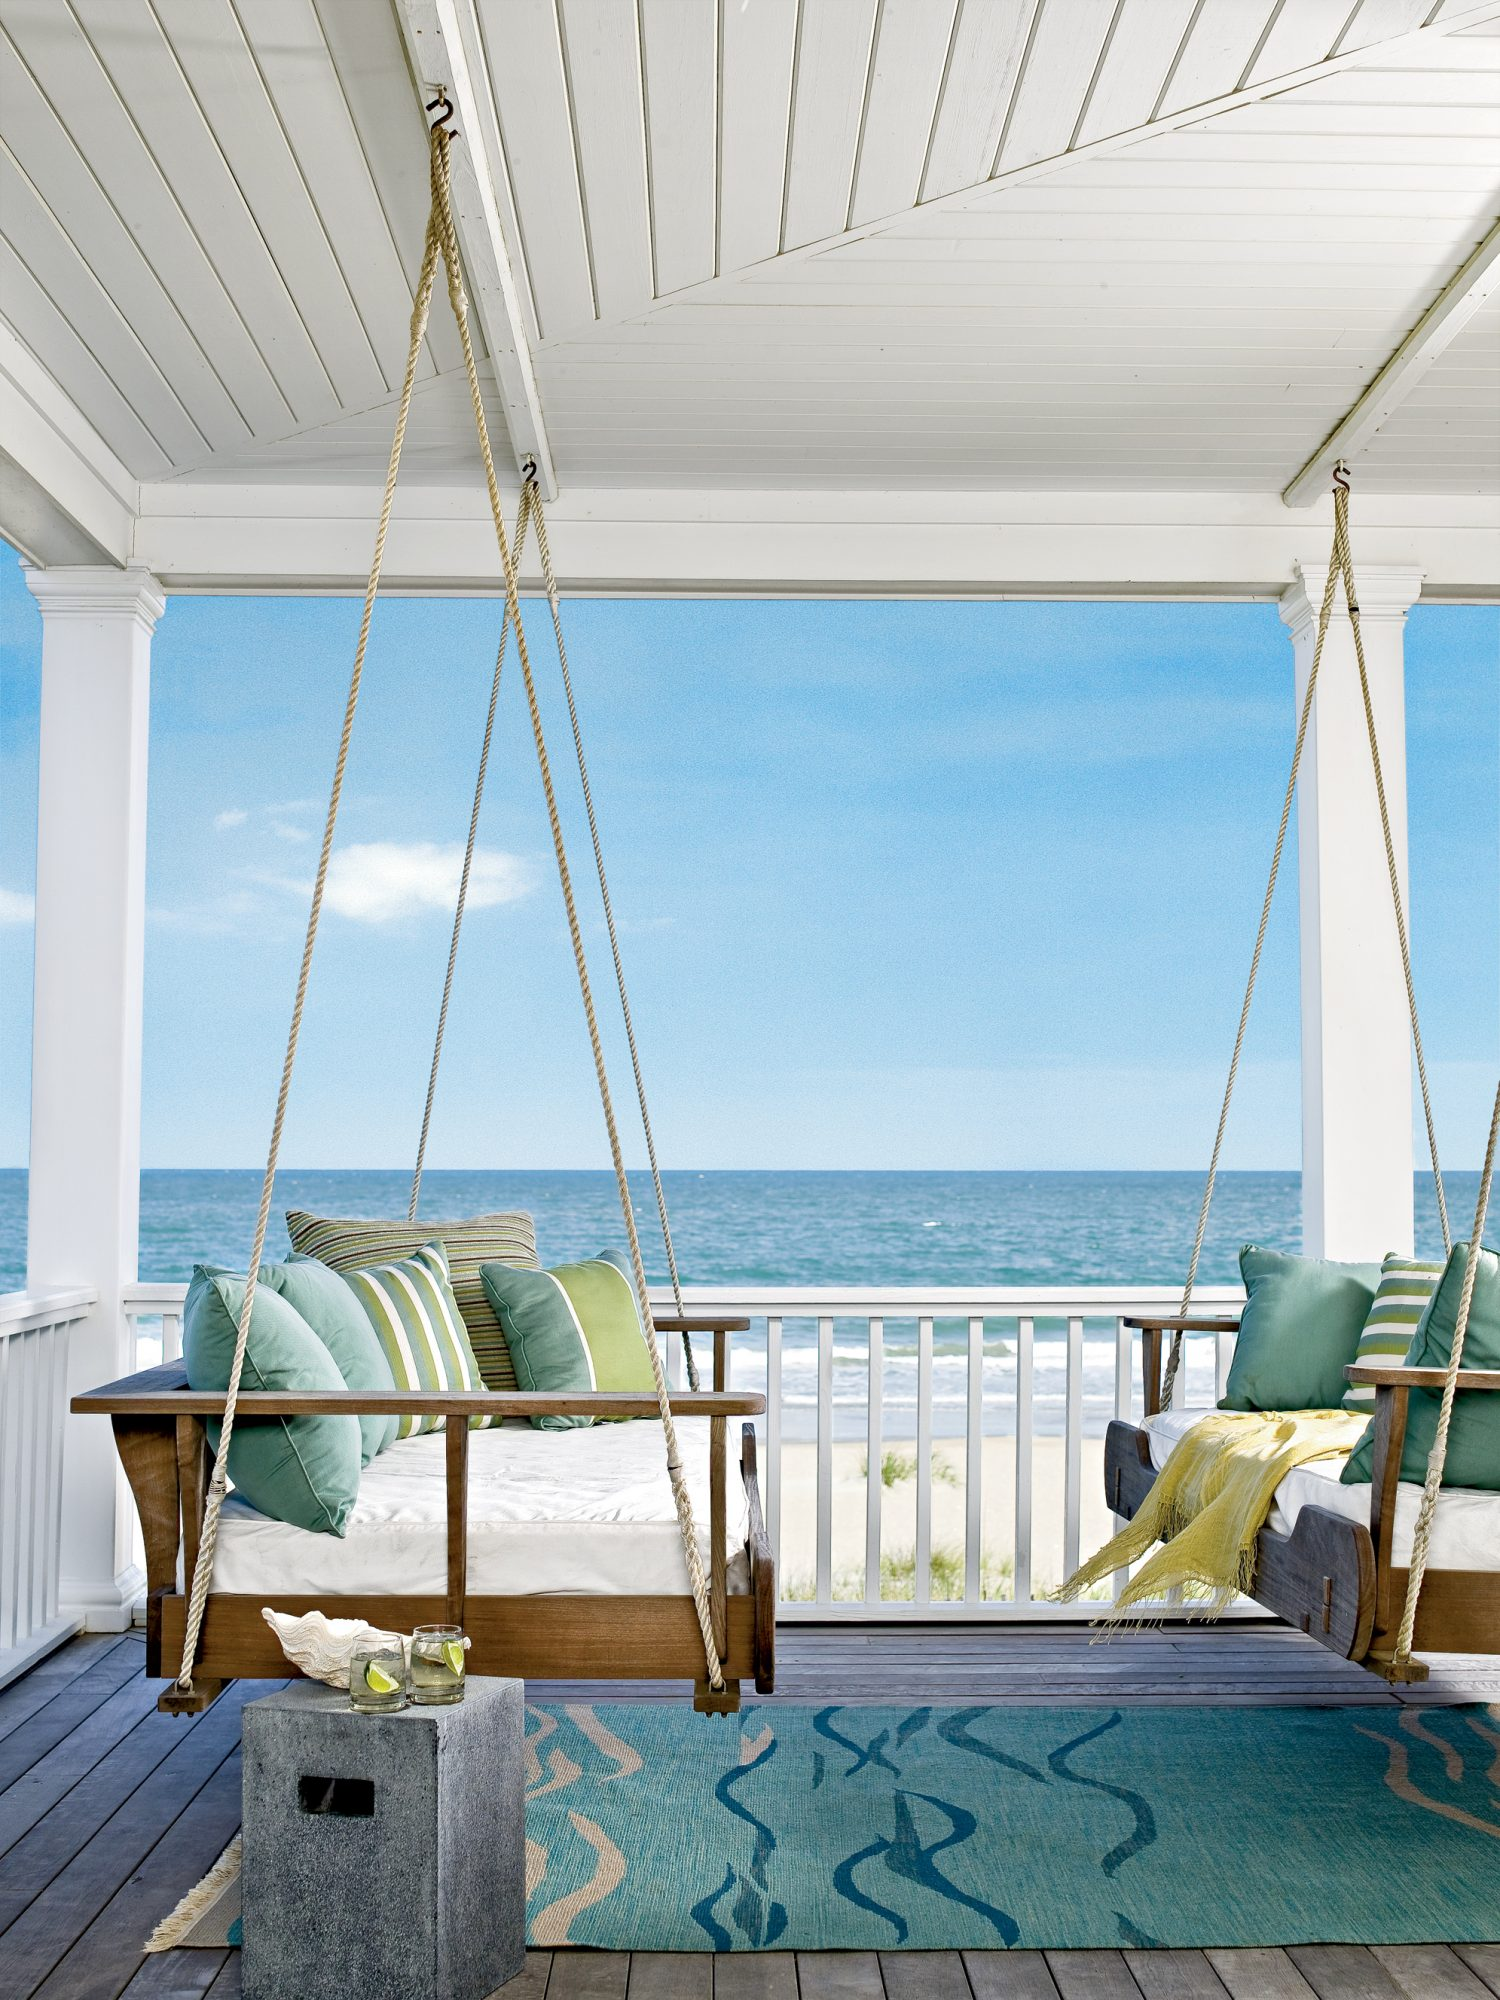 Suspend swinging daybeds on the porch of this DeBordieu, South Carolina, beach house capitalize on the stunning vie w, shade, and waterfront breezes. We recommend opting for mattresses with washable slipcovers and pillowcases in outdoor-safe fabrics. Here